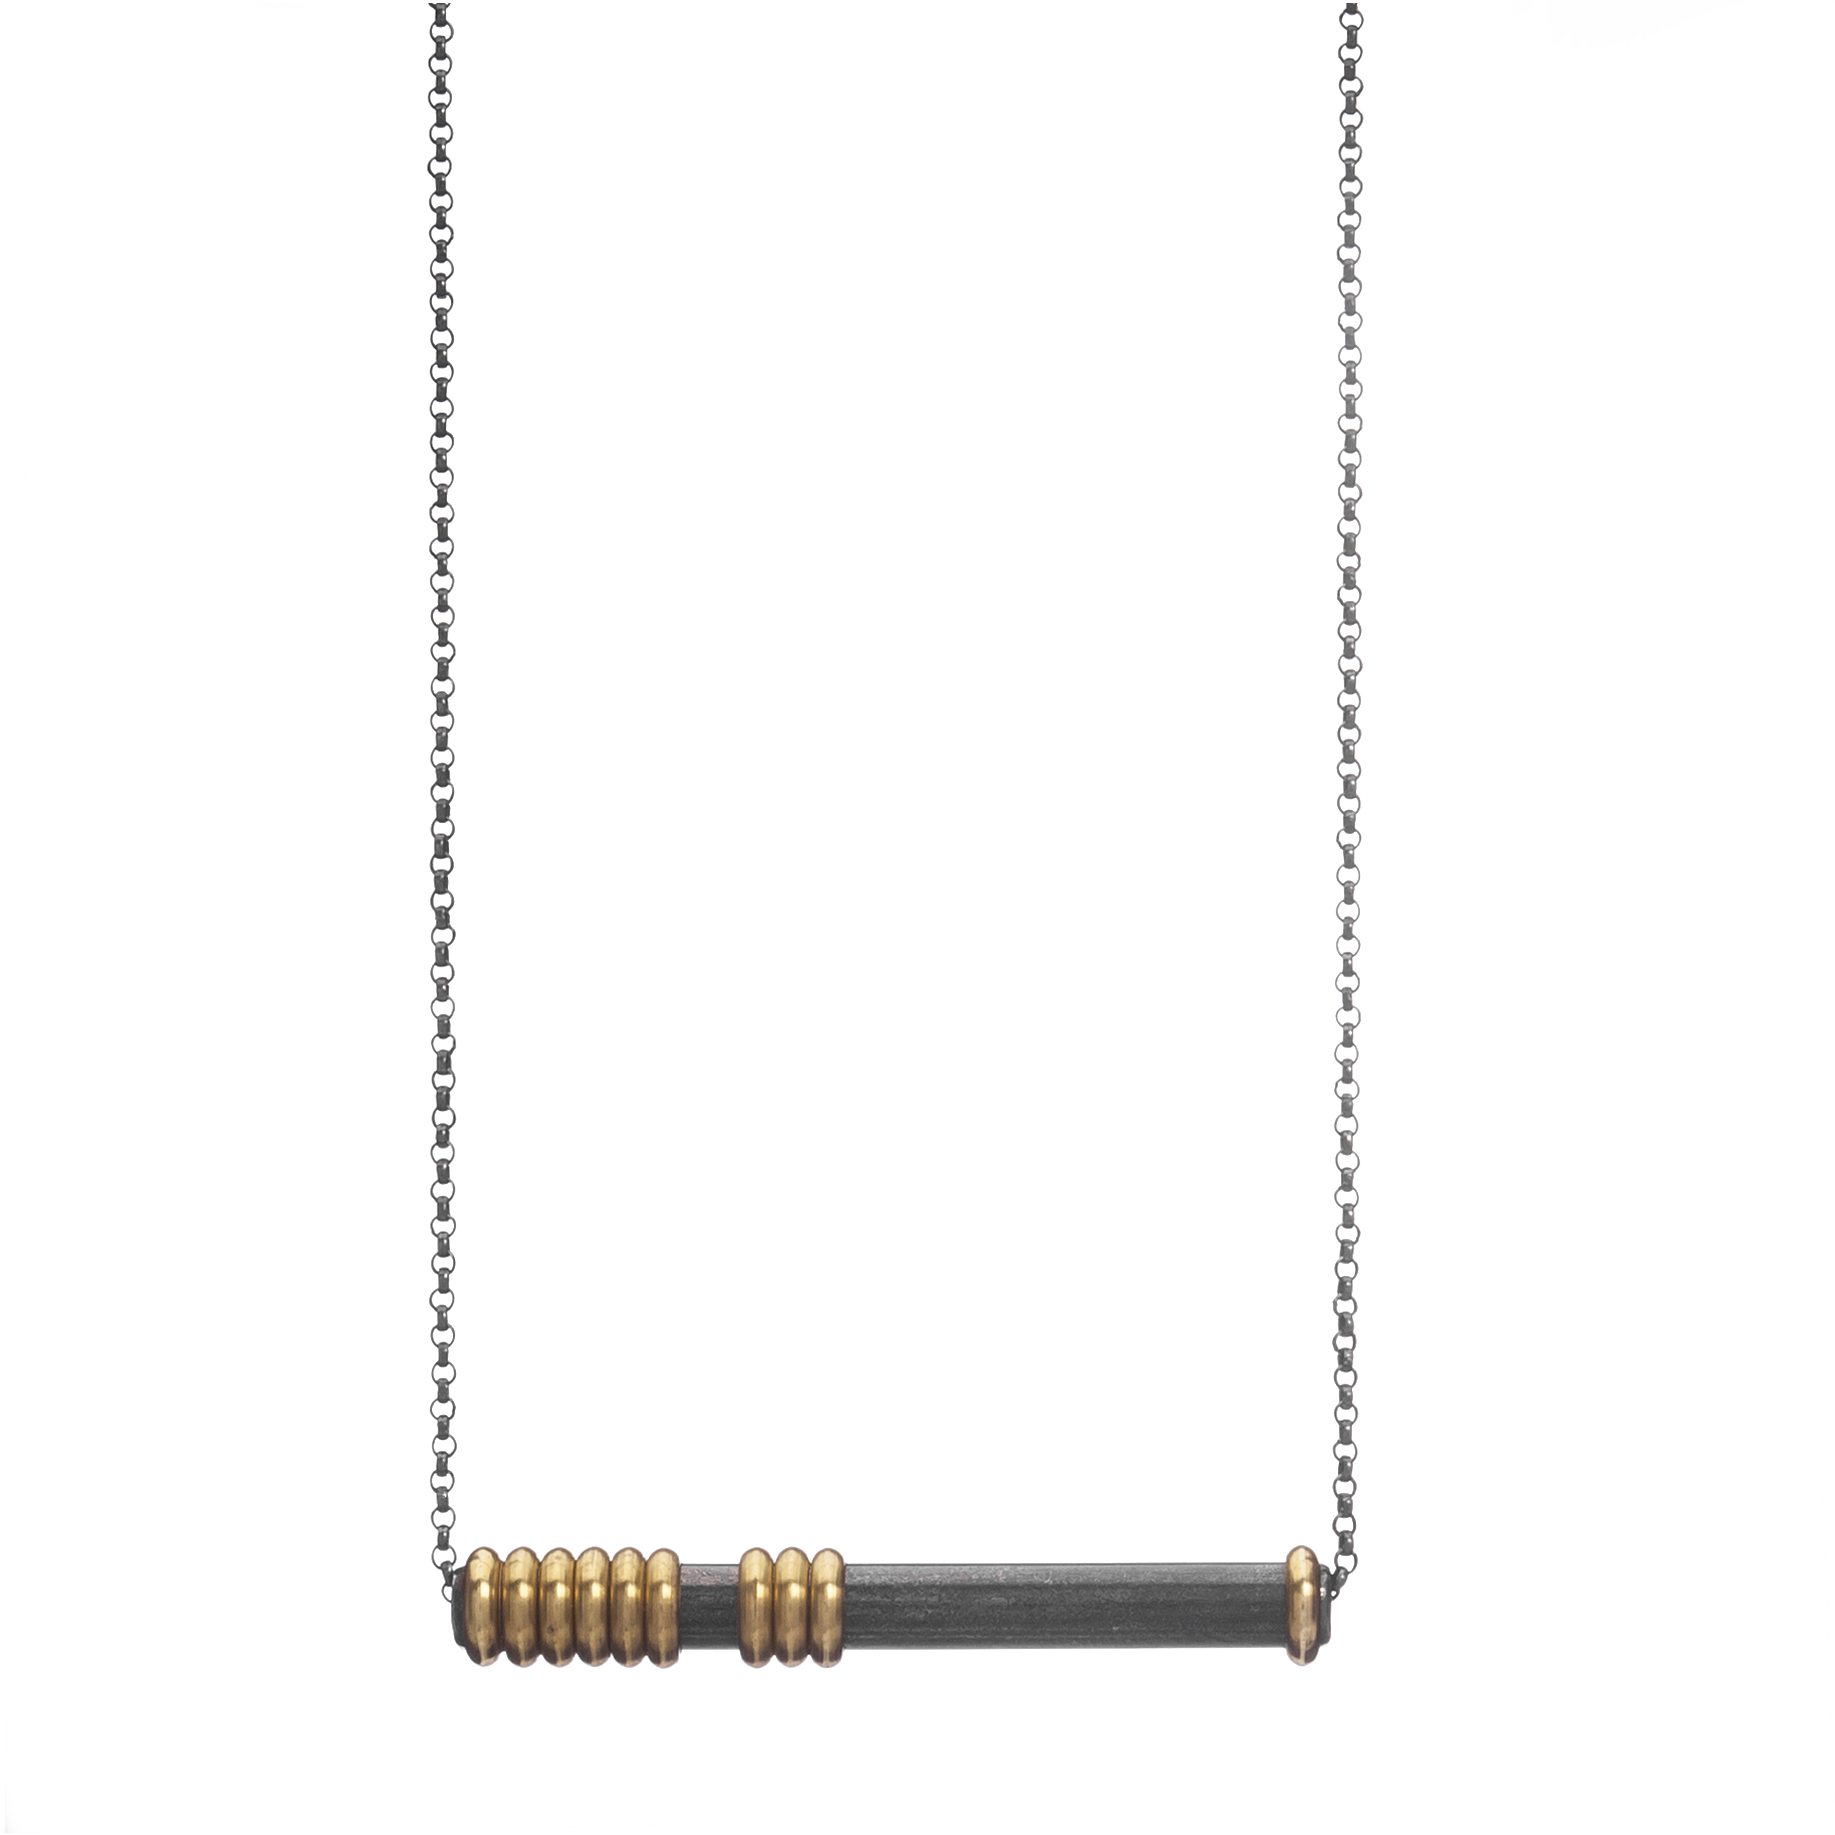 Abacus LatNecklace $85  steel bar, brass beads, oxidized sterling